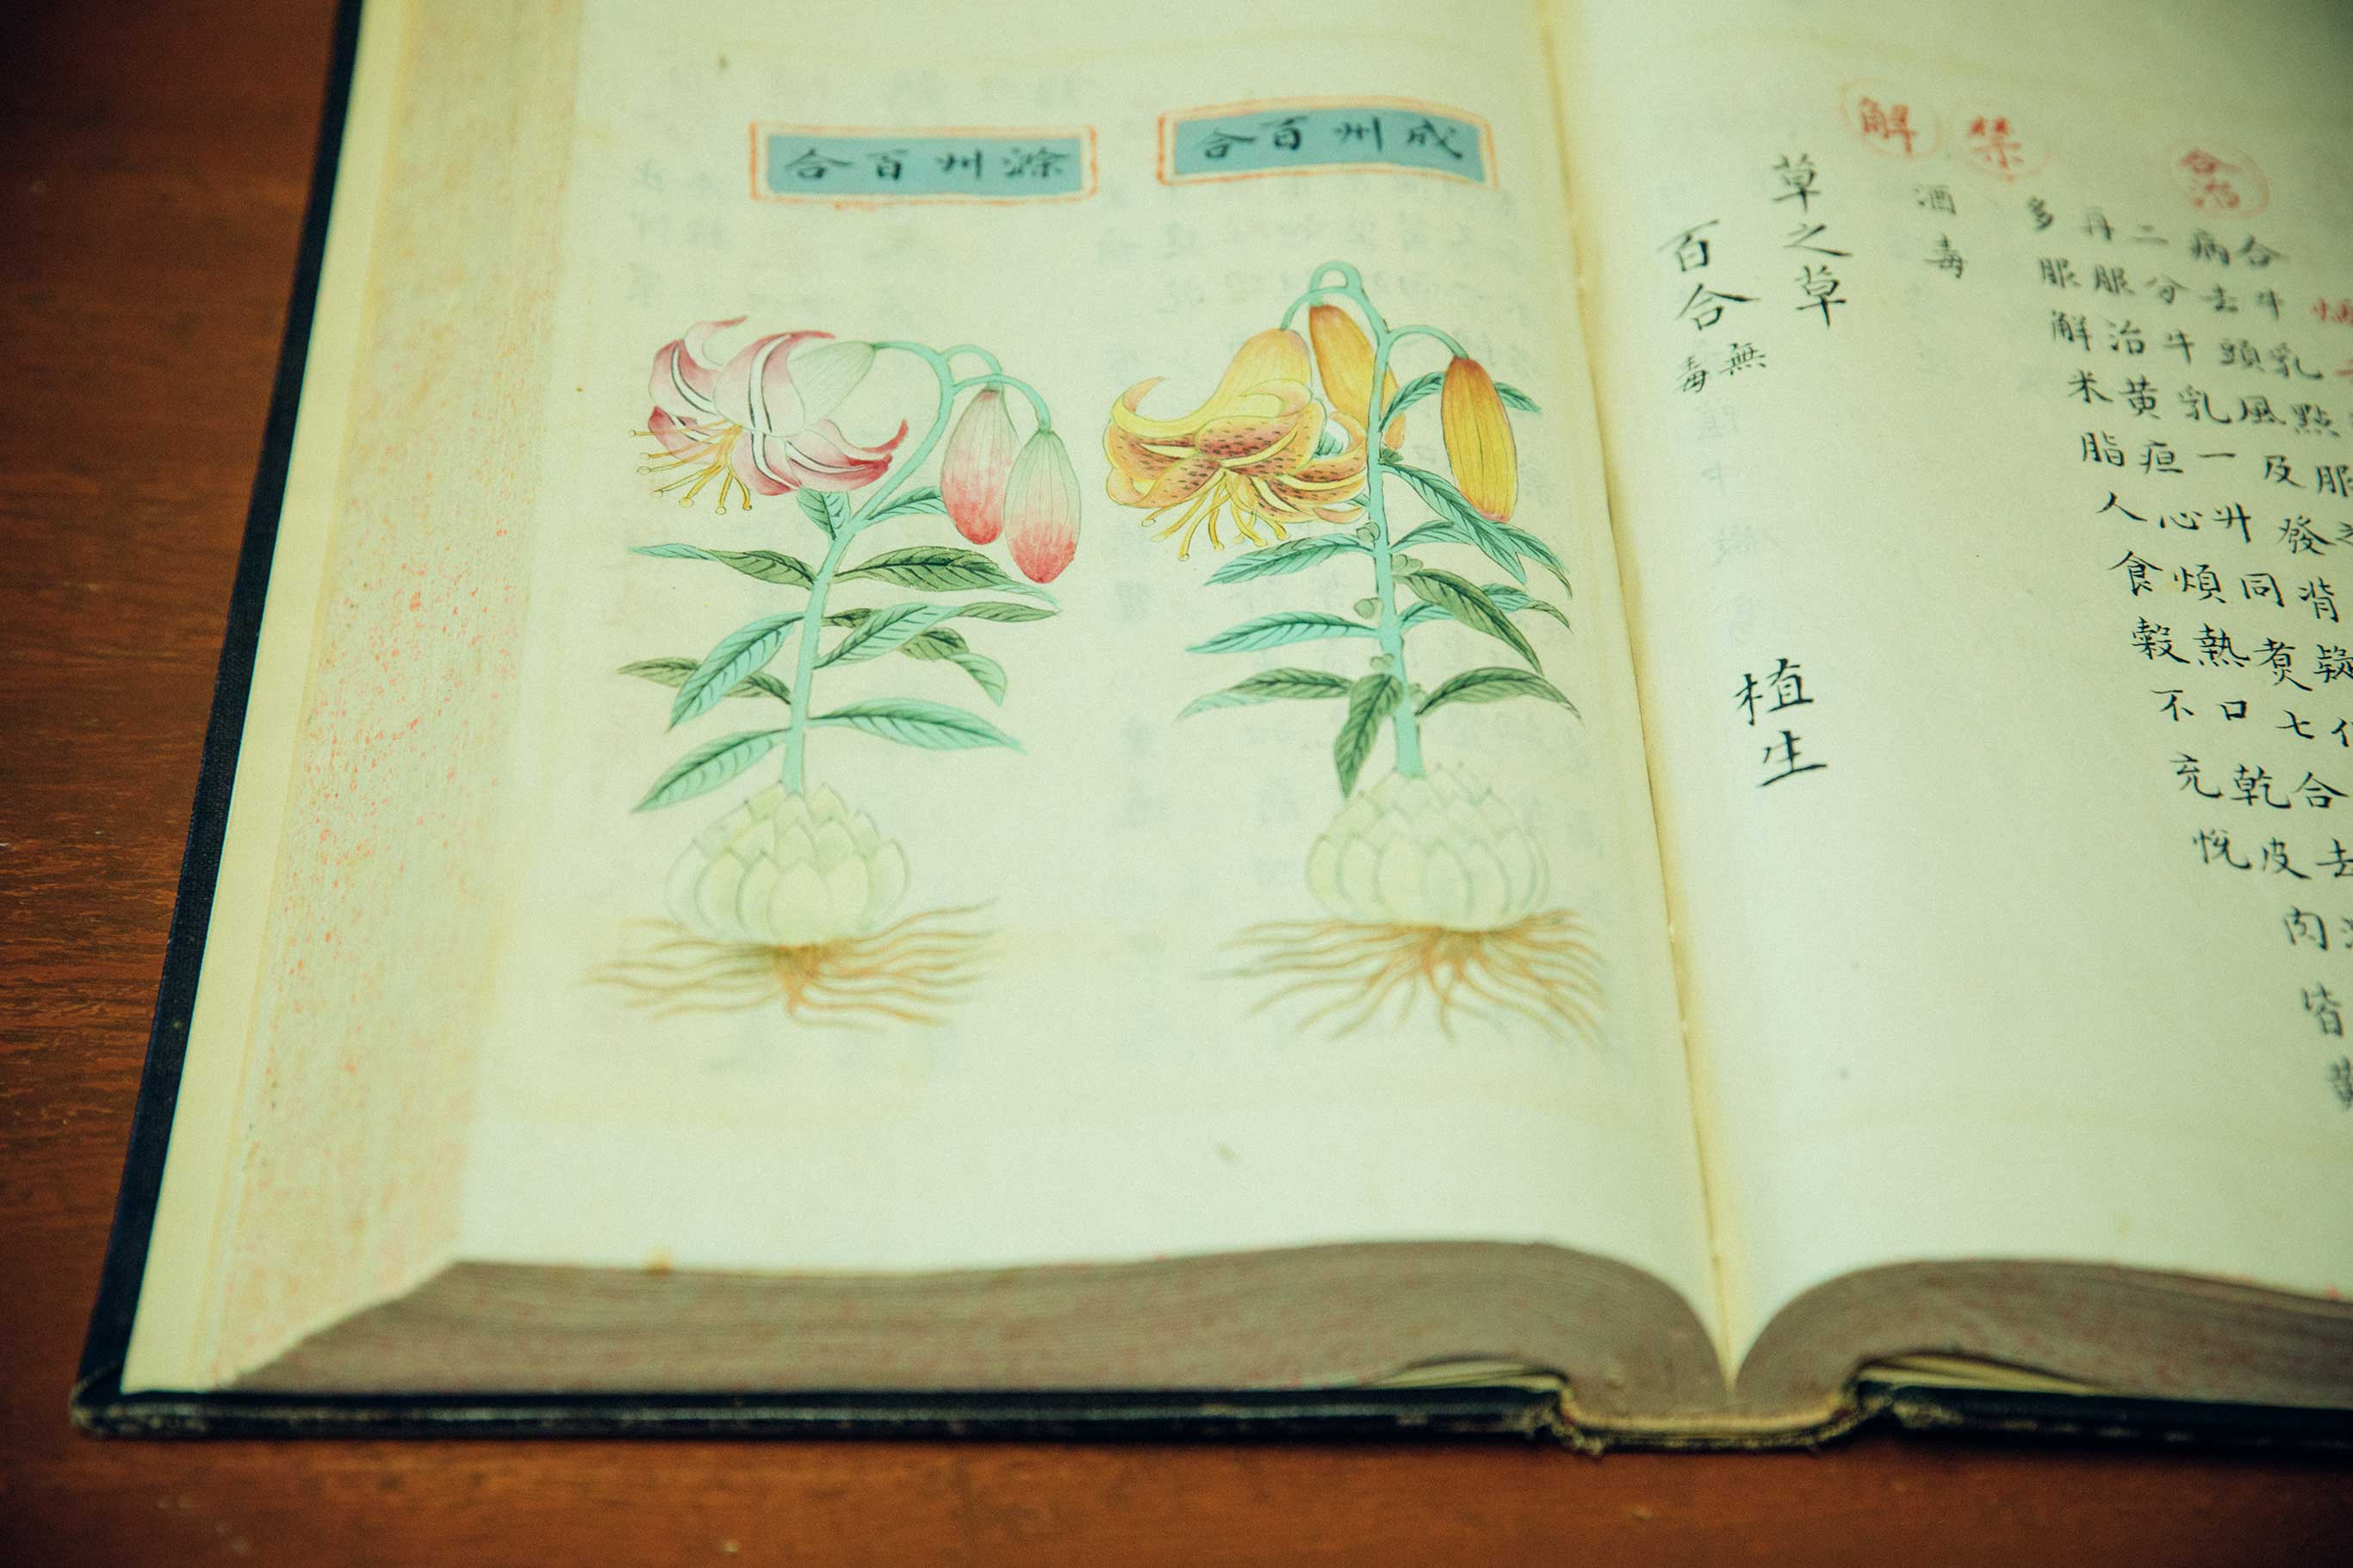 A herbal book that goes back to China's Ming Dynasty, collected by 2nd generation doctor Yasuo Otsuka